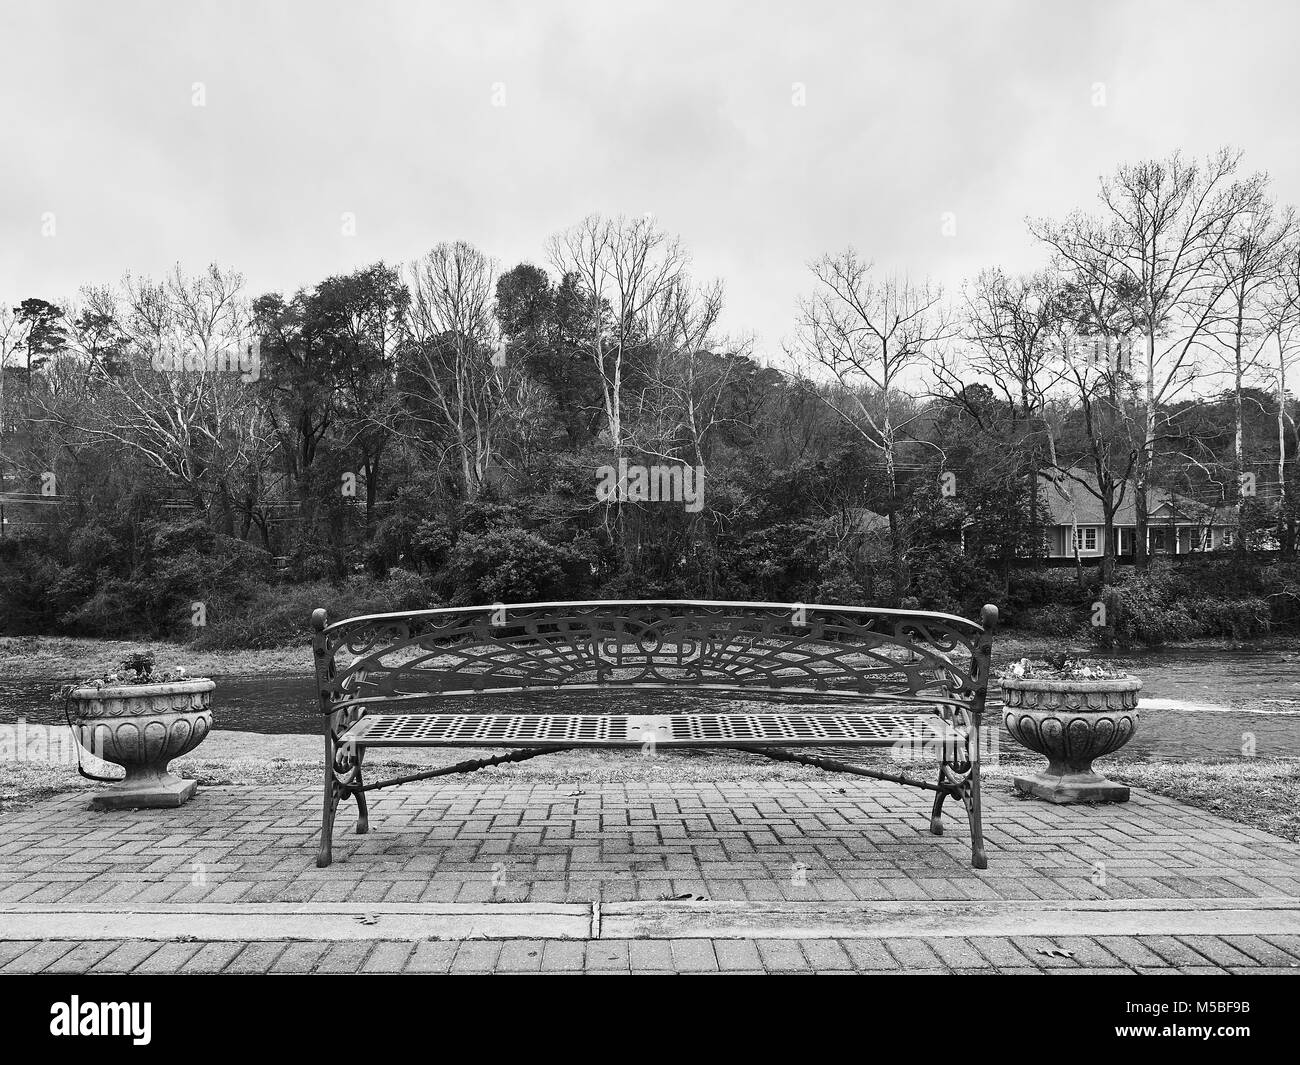 Unoccupied city park bench overlooking Autauga Creek with copy space, in Prattville Alabama, USA. - Stock Image